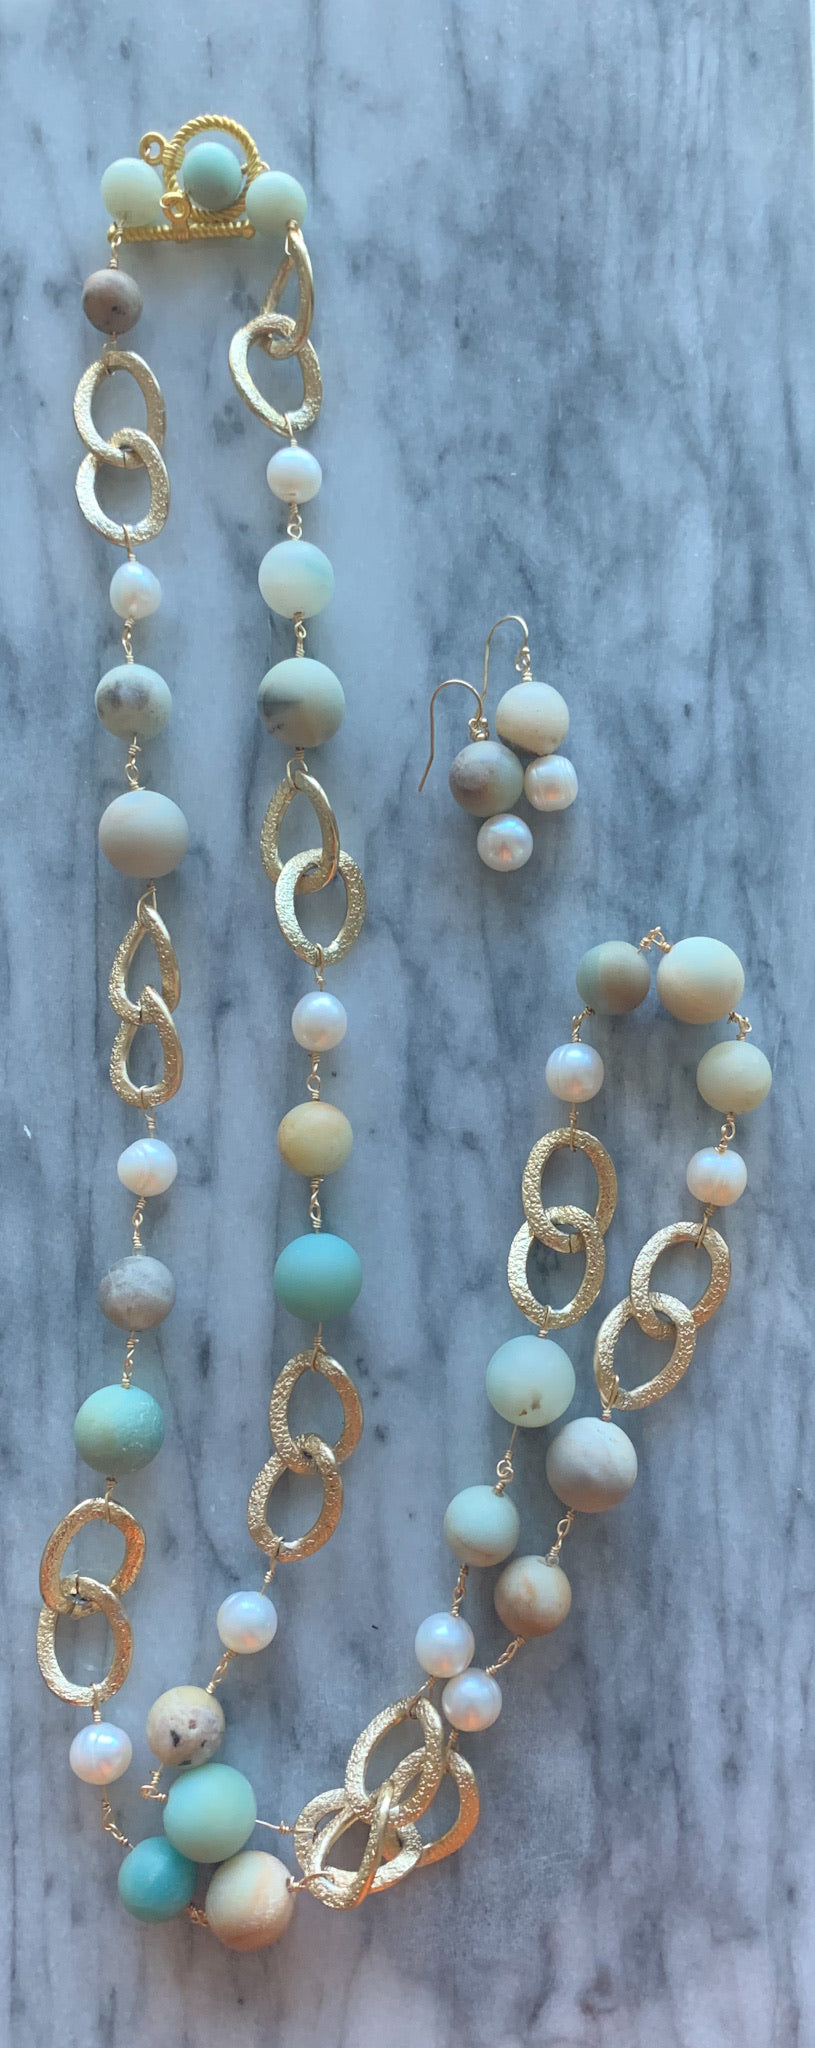 Adventurine and Pearl Earrings (Earrings Only)